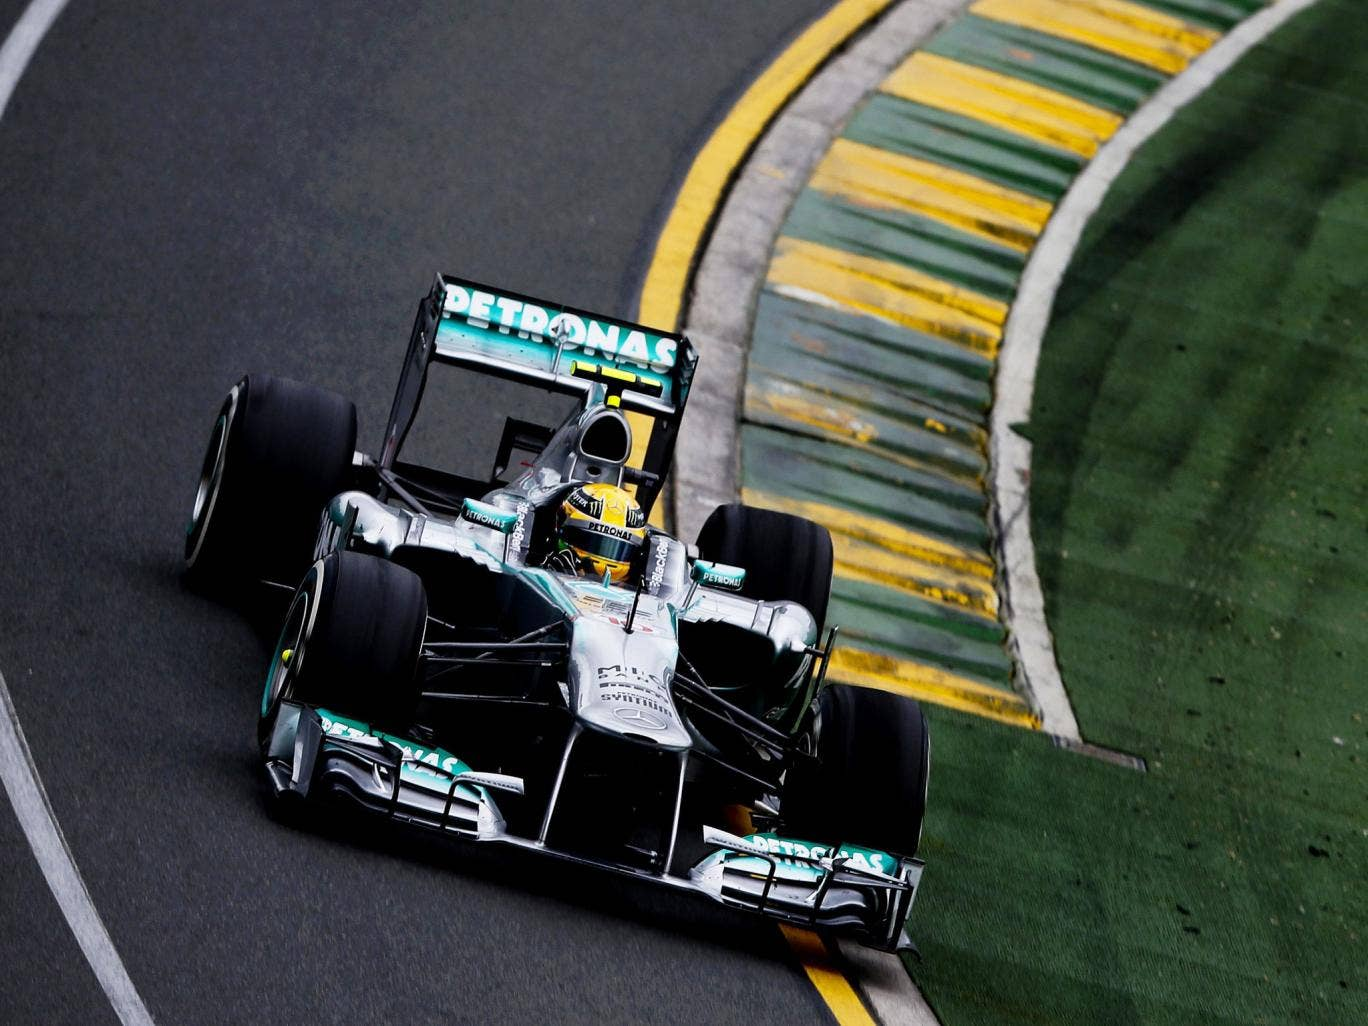 Lewis Hamilton was happy with finishing fifth on his Mercedes debut